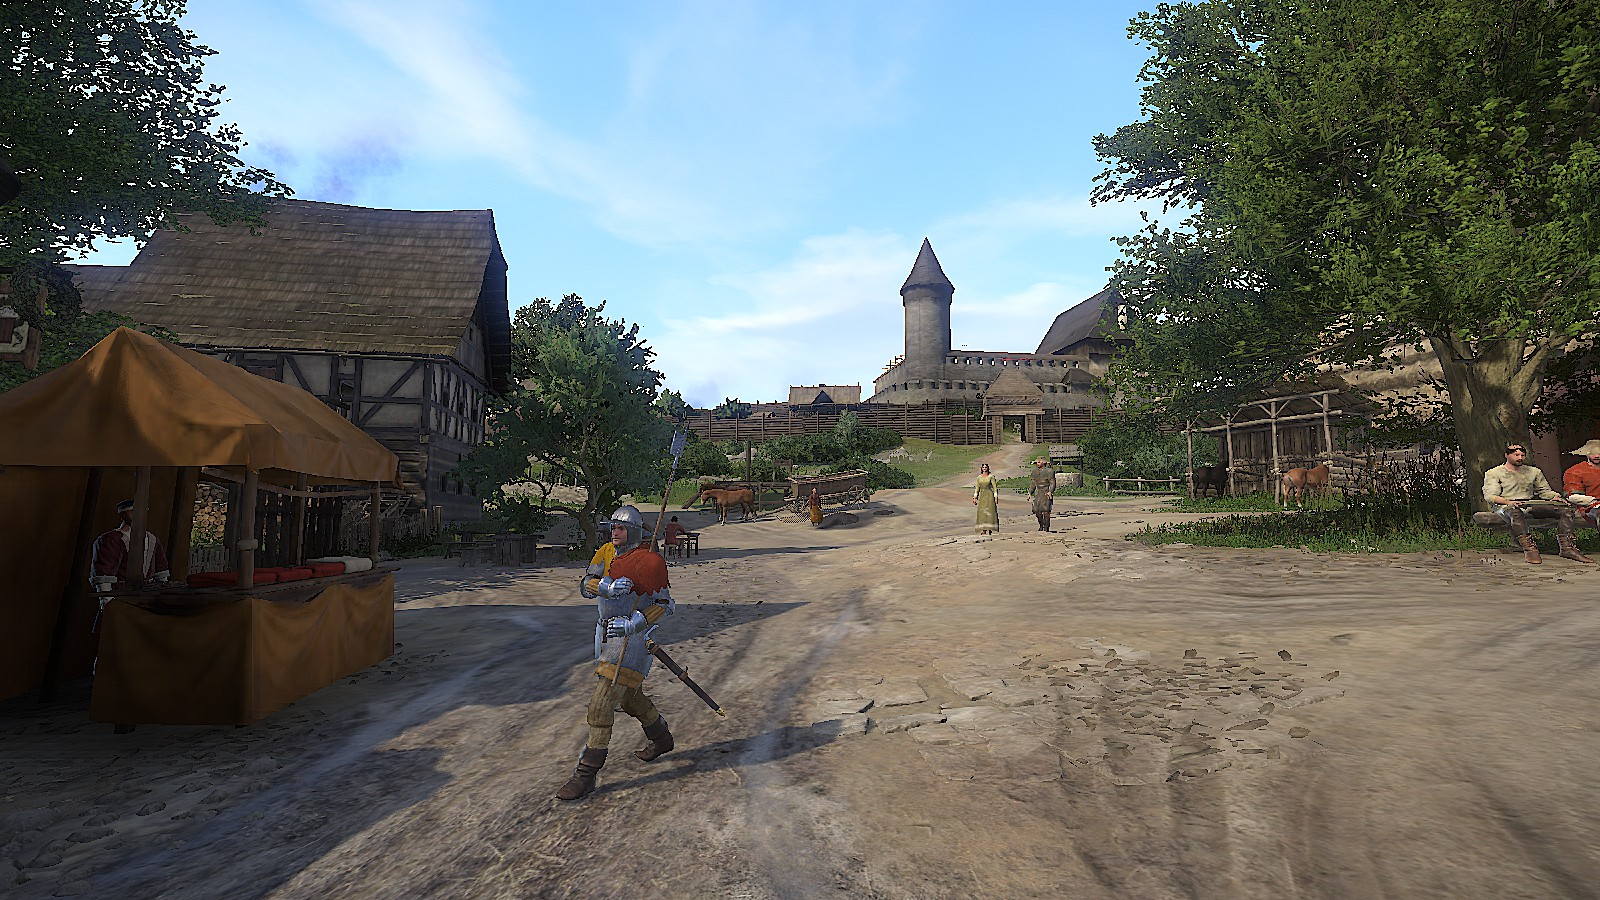 Kingdom Come  Deliverance Screenshot 2019.02.12 - 01.38.26.06.jpg - Kingdom Come: Deliverance